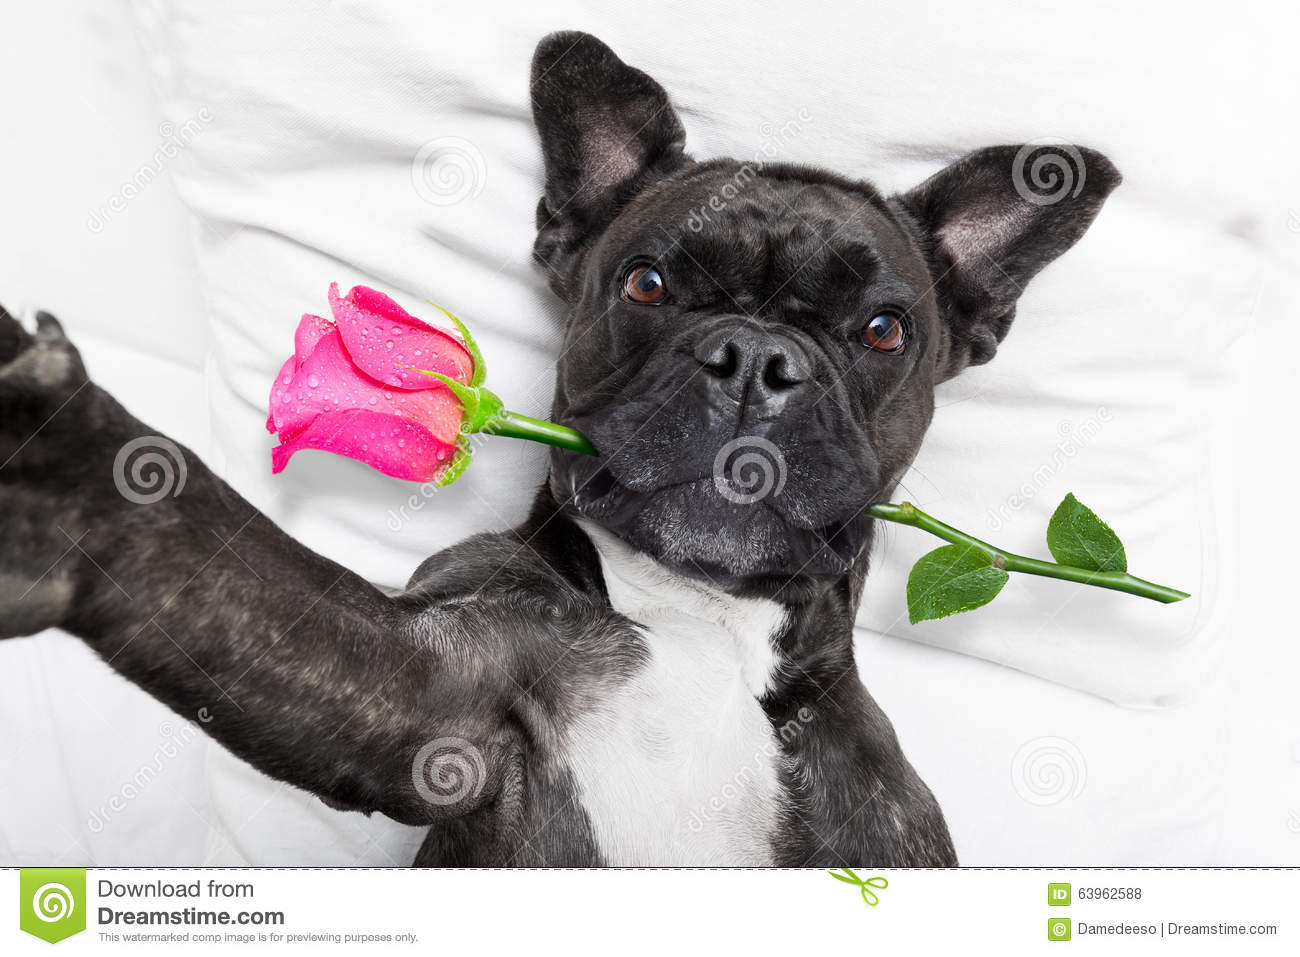 puppy wallpaper free download for mobile